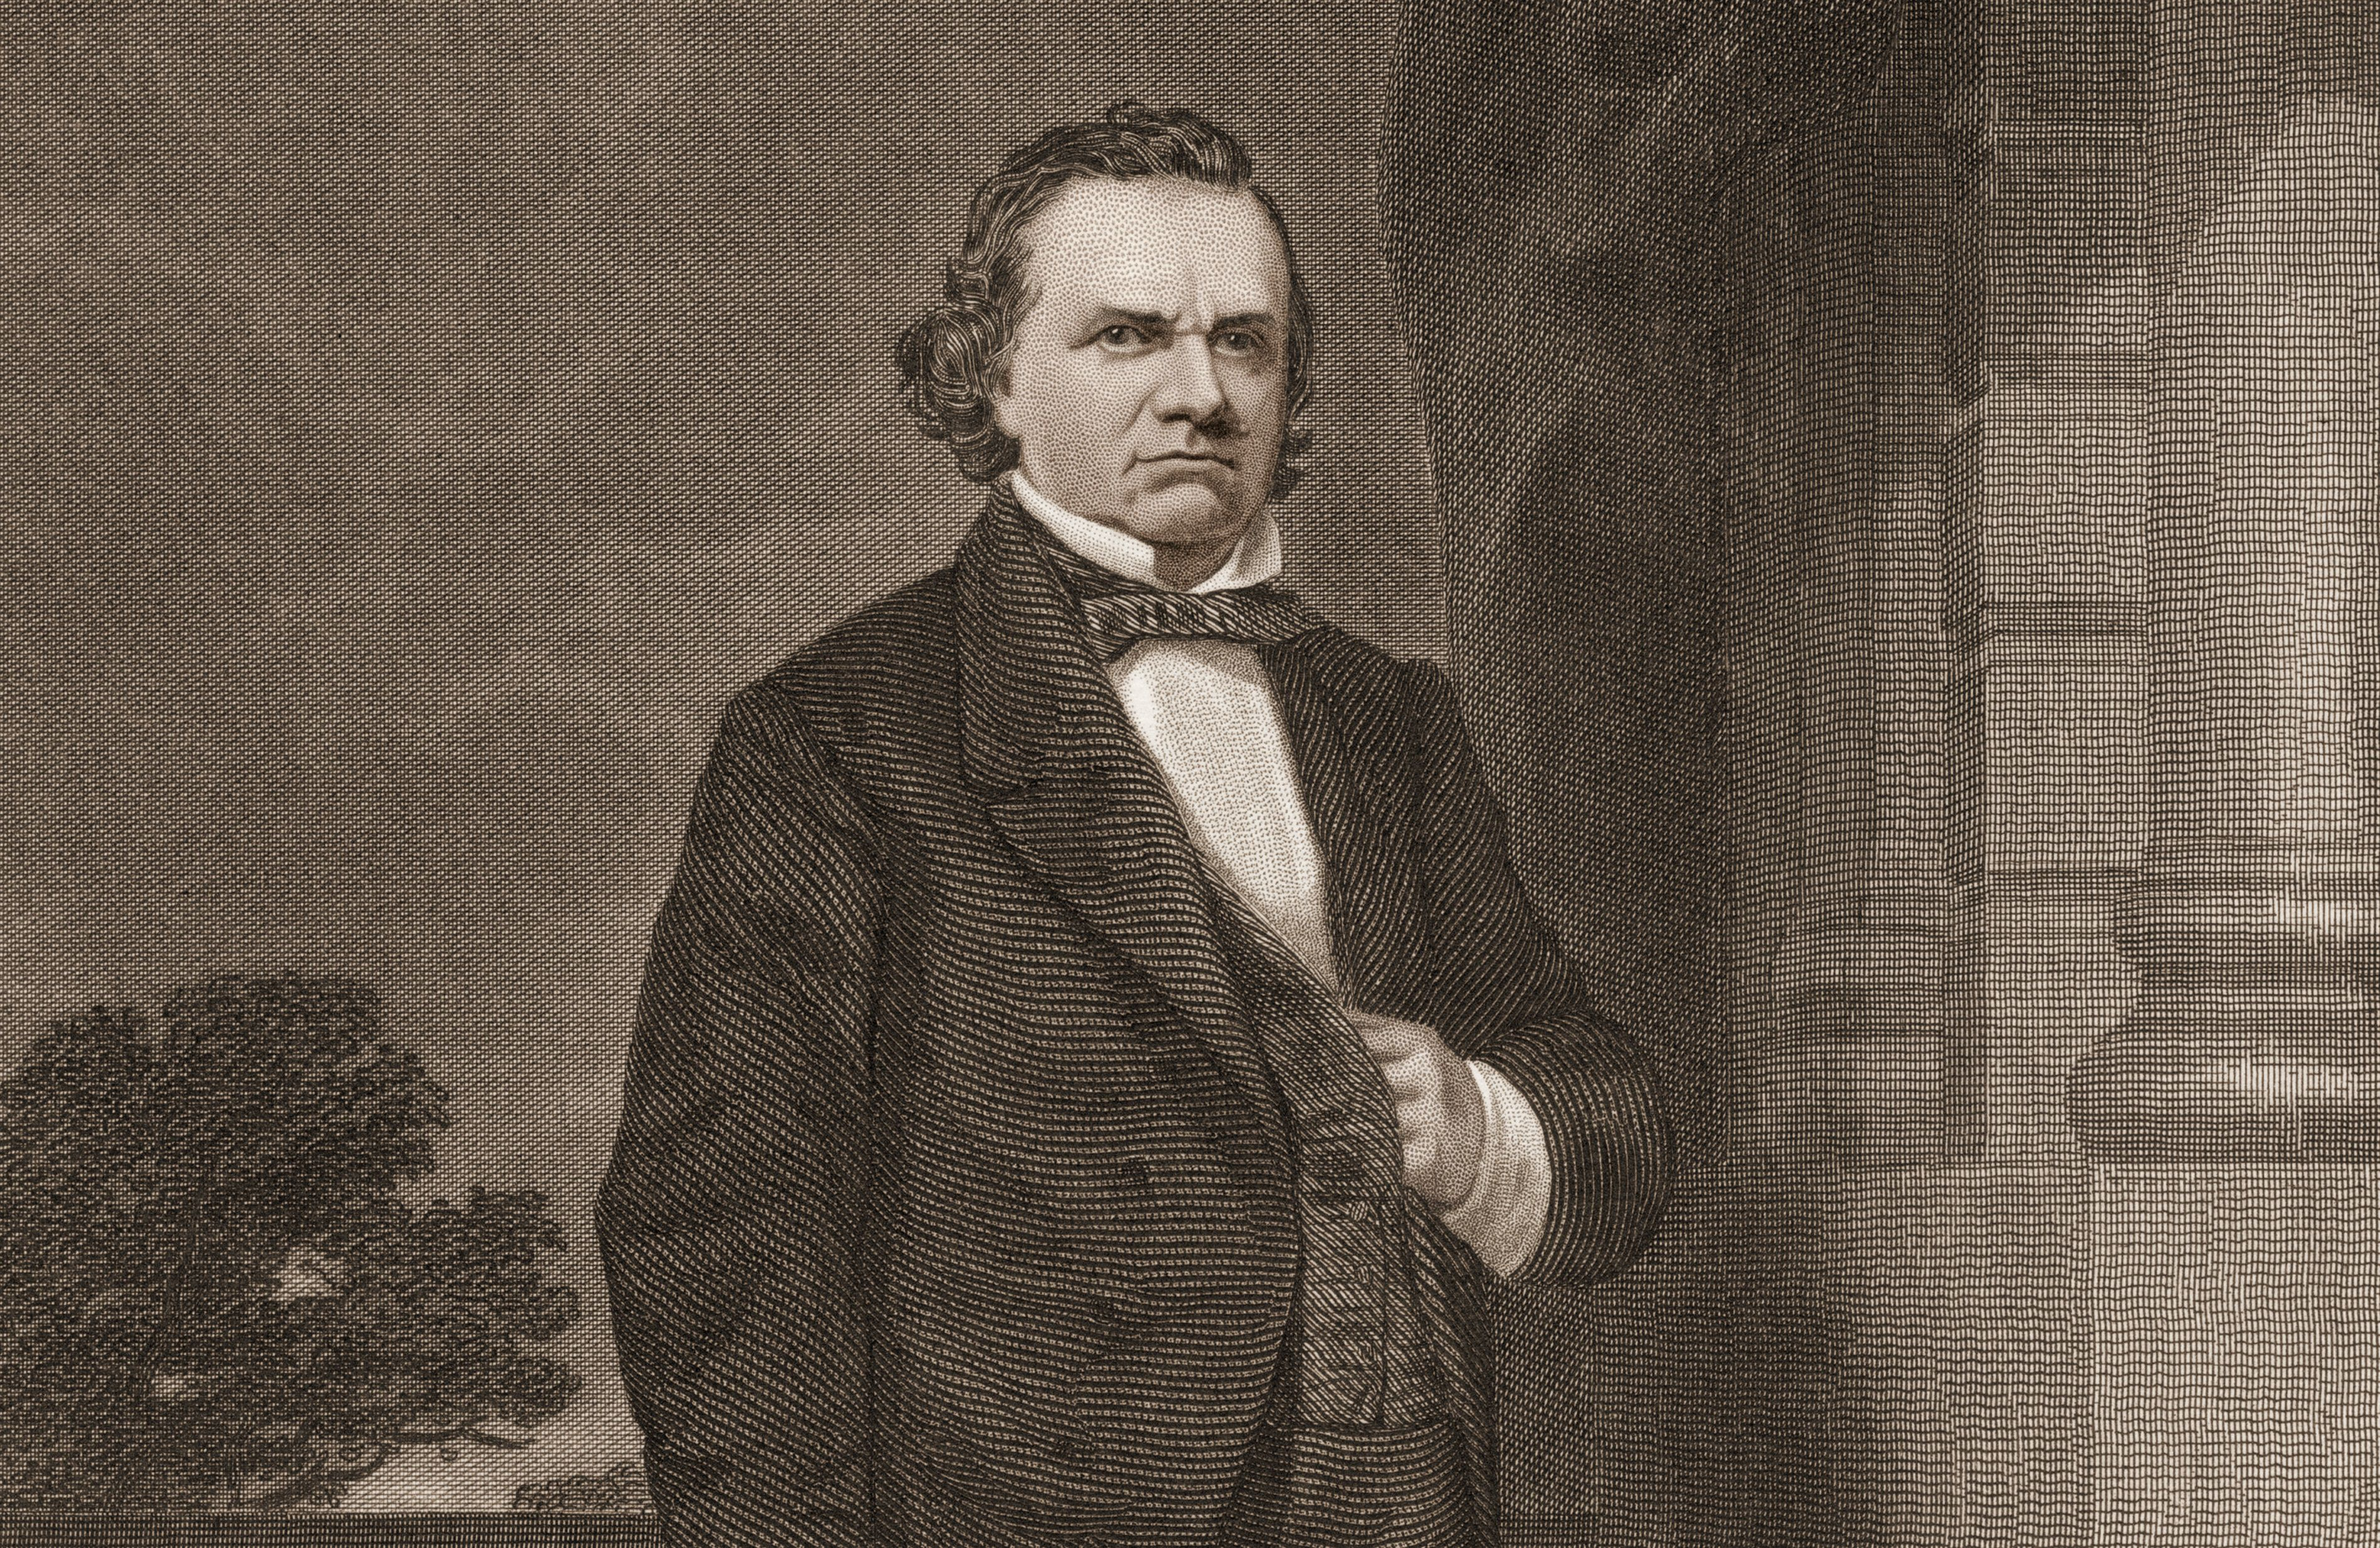 explain senator stephen douglas attempts at securing a bid for the presidency Abraham lincoln: campaigns and elections stephen douglas found himself vilified as the candidate of the southern democratic party for the presidency.